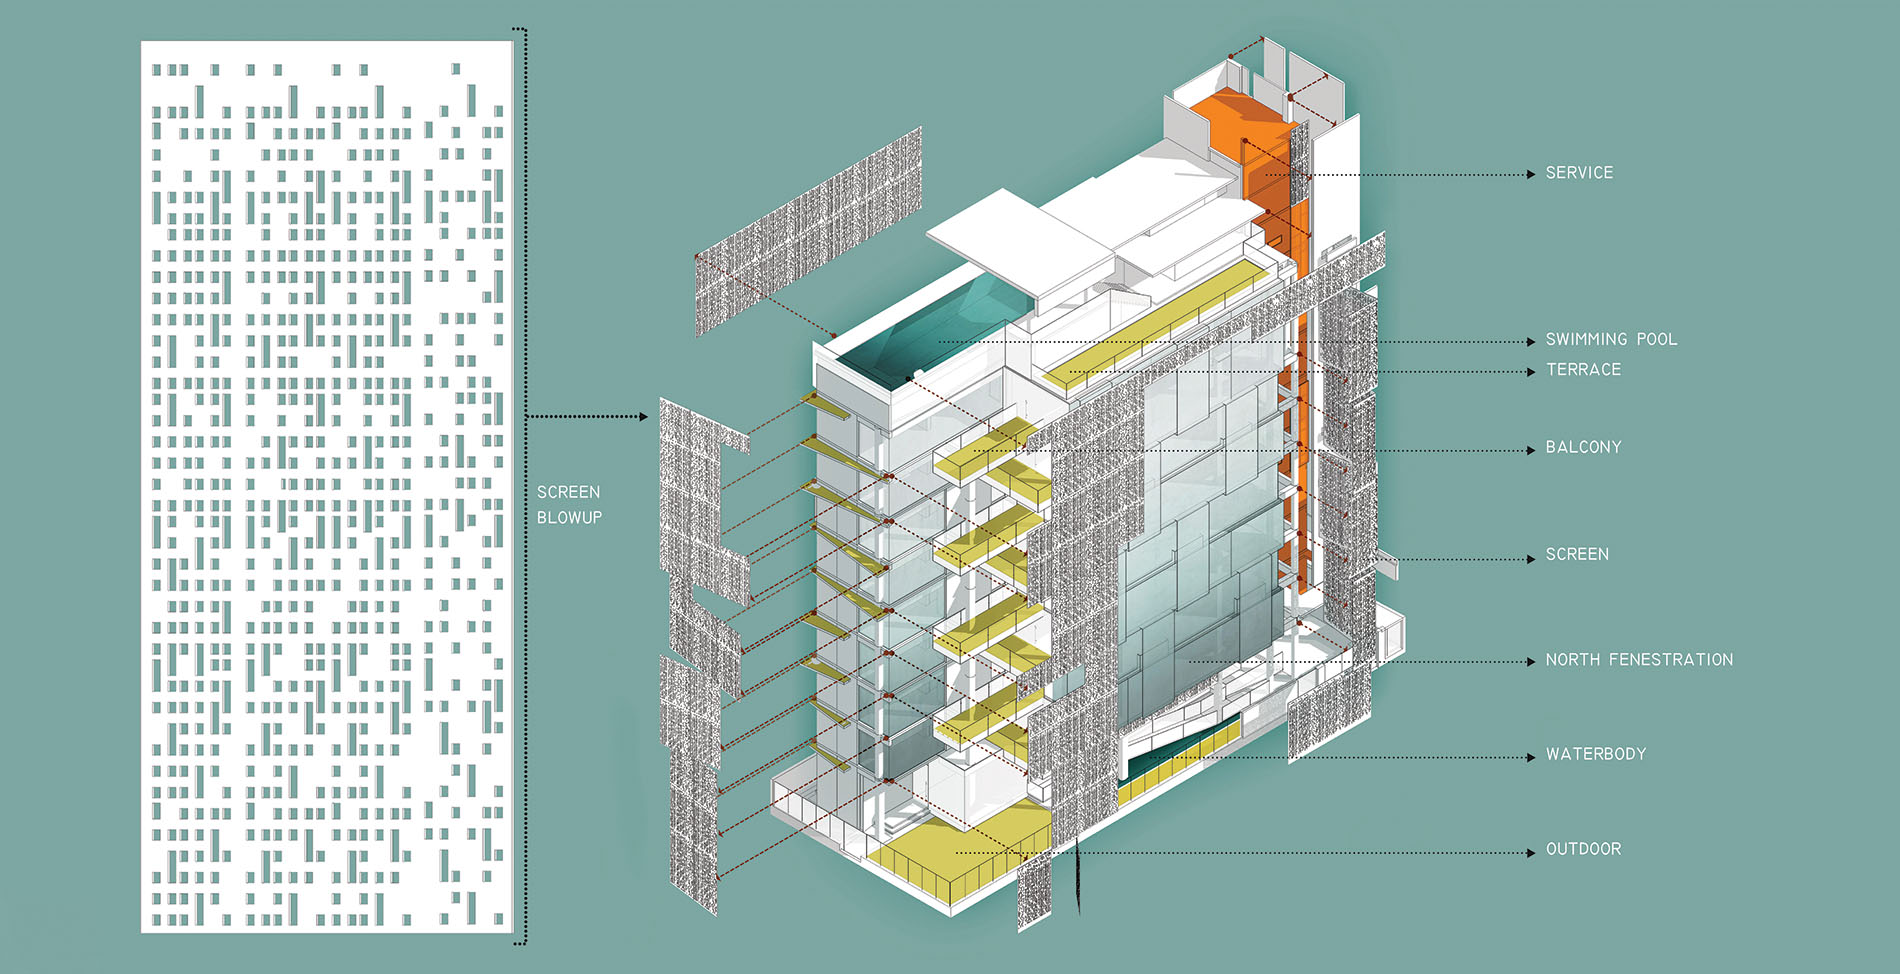 Isometric diagram with exploded screens and legends © Studio Morphogenesis Ltd.